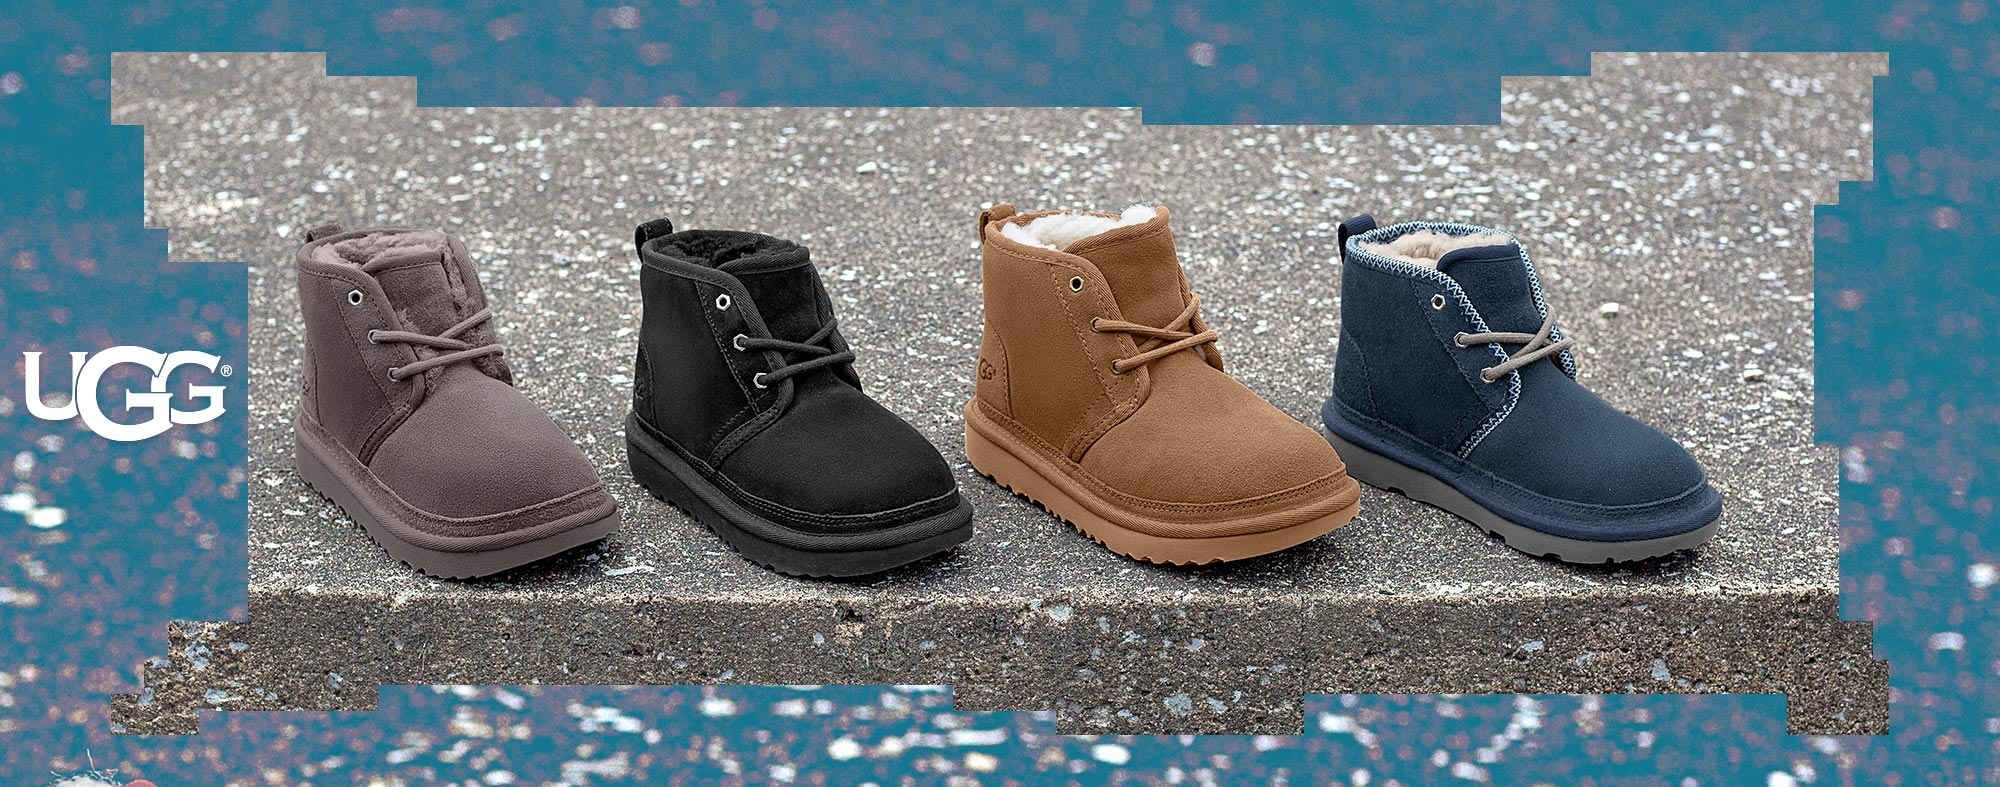 Shop shoes and boots from UGG at Journeys Kidz